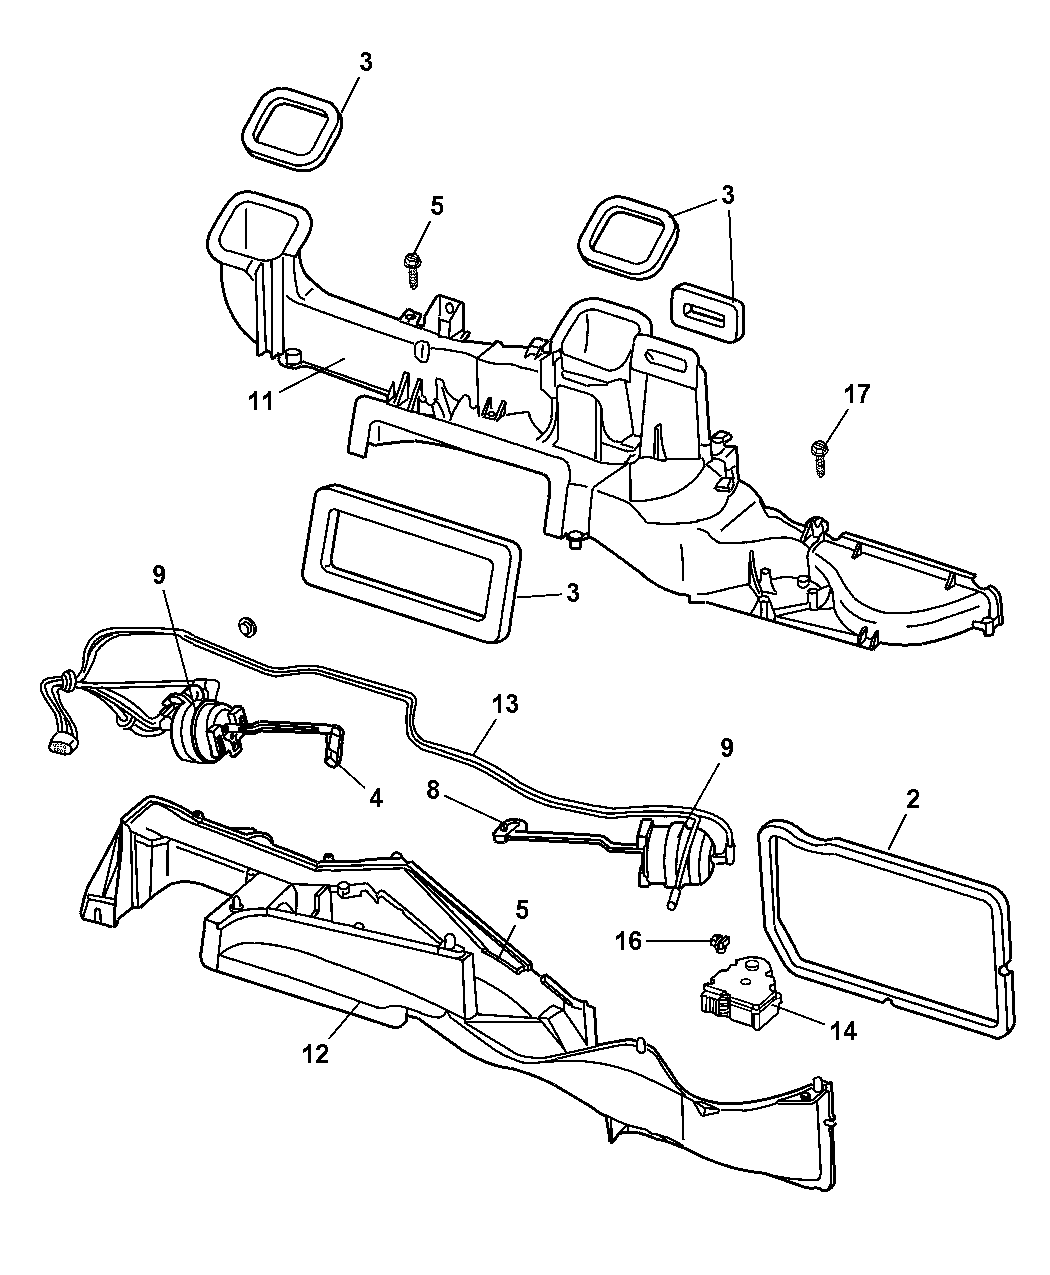 Dodge ram air conditioning diagram